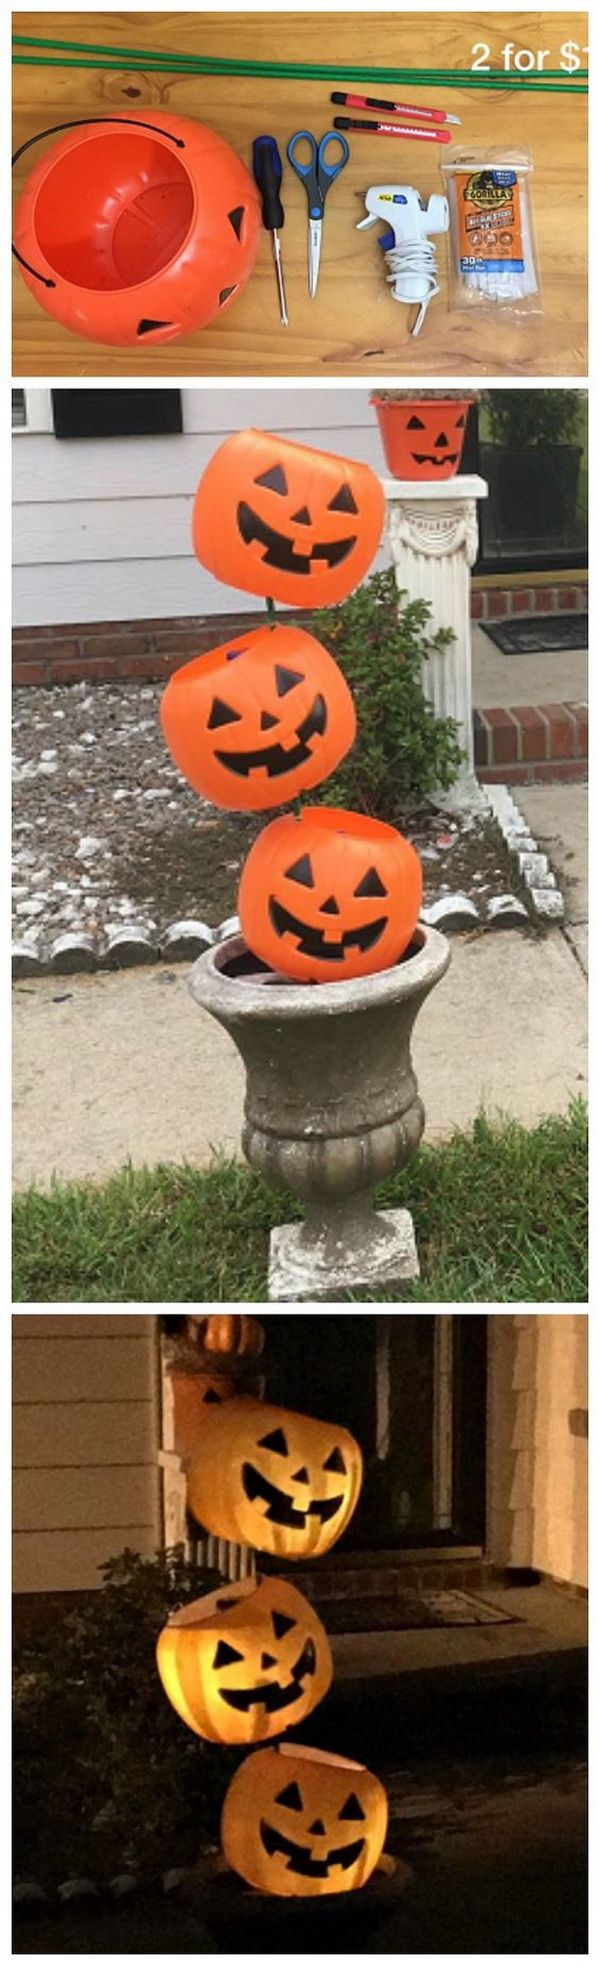 30+ Homemade Halloween Decoration Ideas Pinterest Plastic - Homemade Halloween Decorations